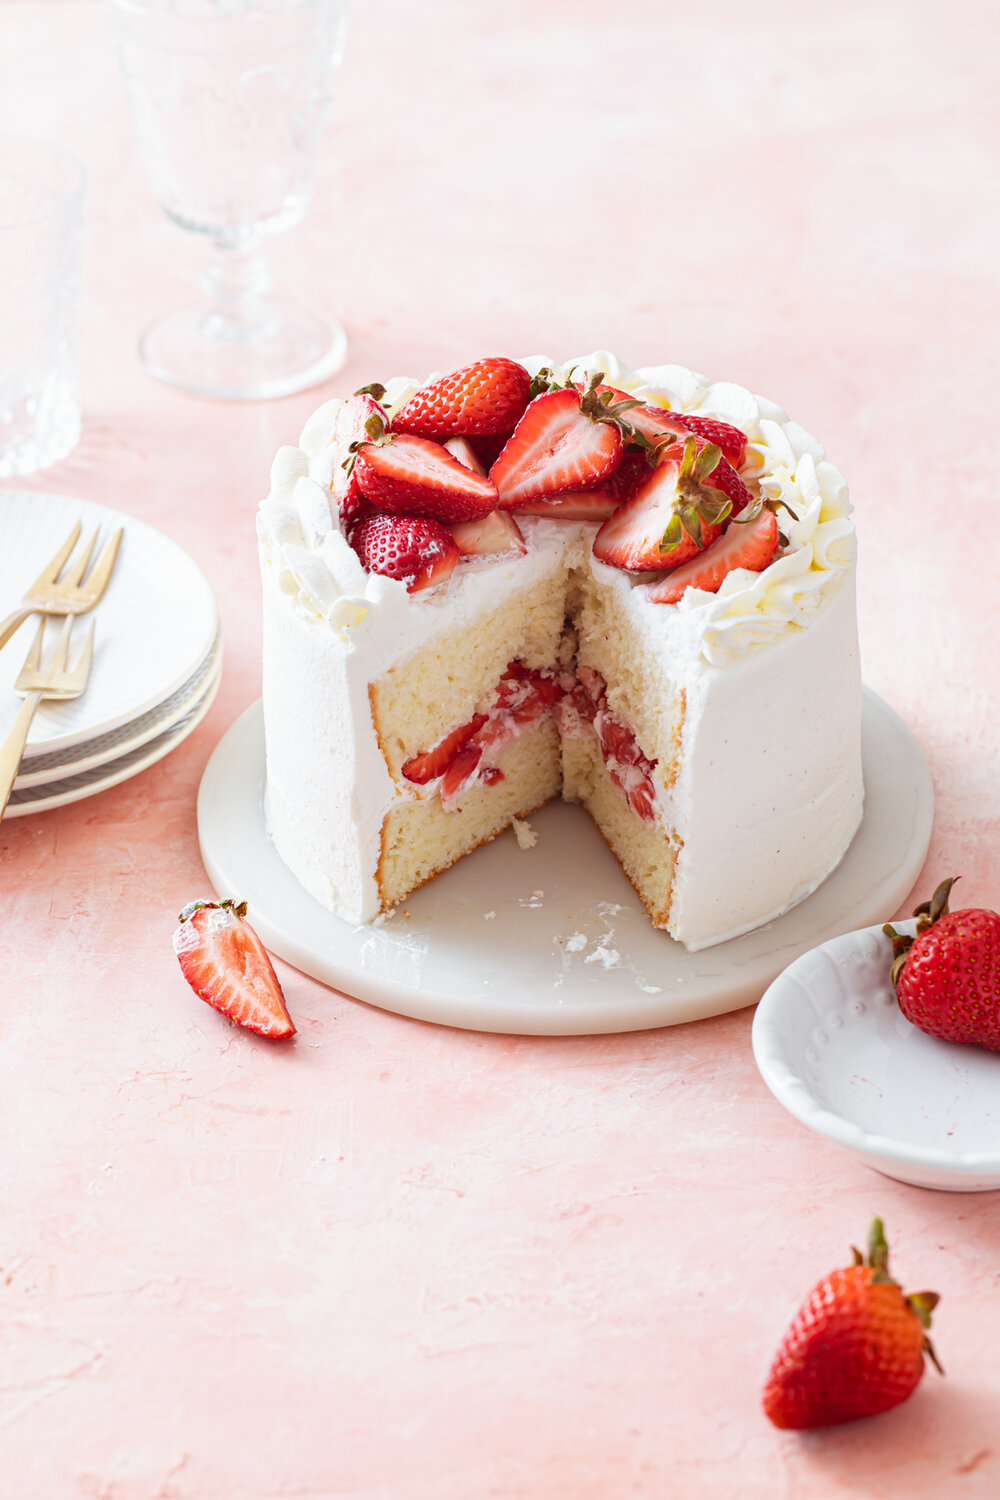 Small Strawberry Chiffon Cake with whipped cream frosting